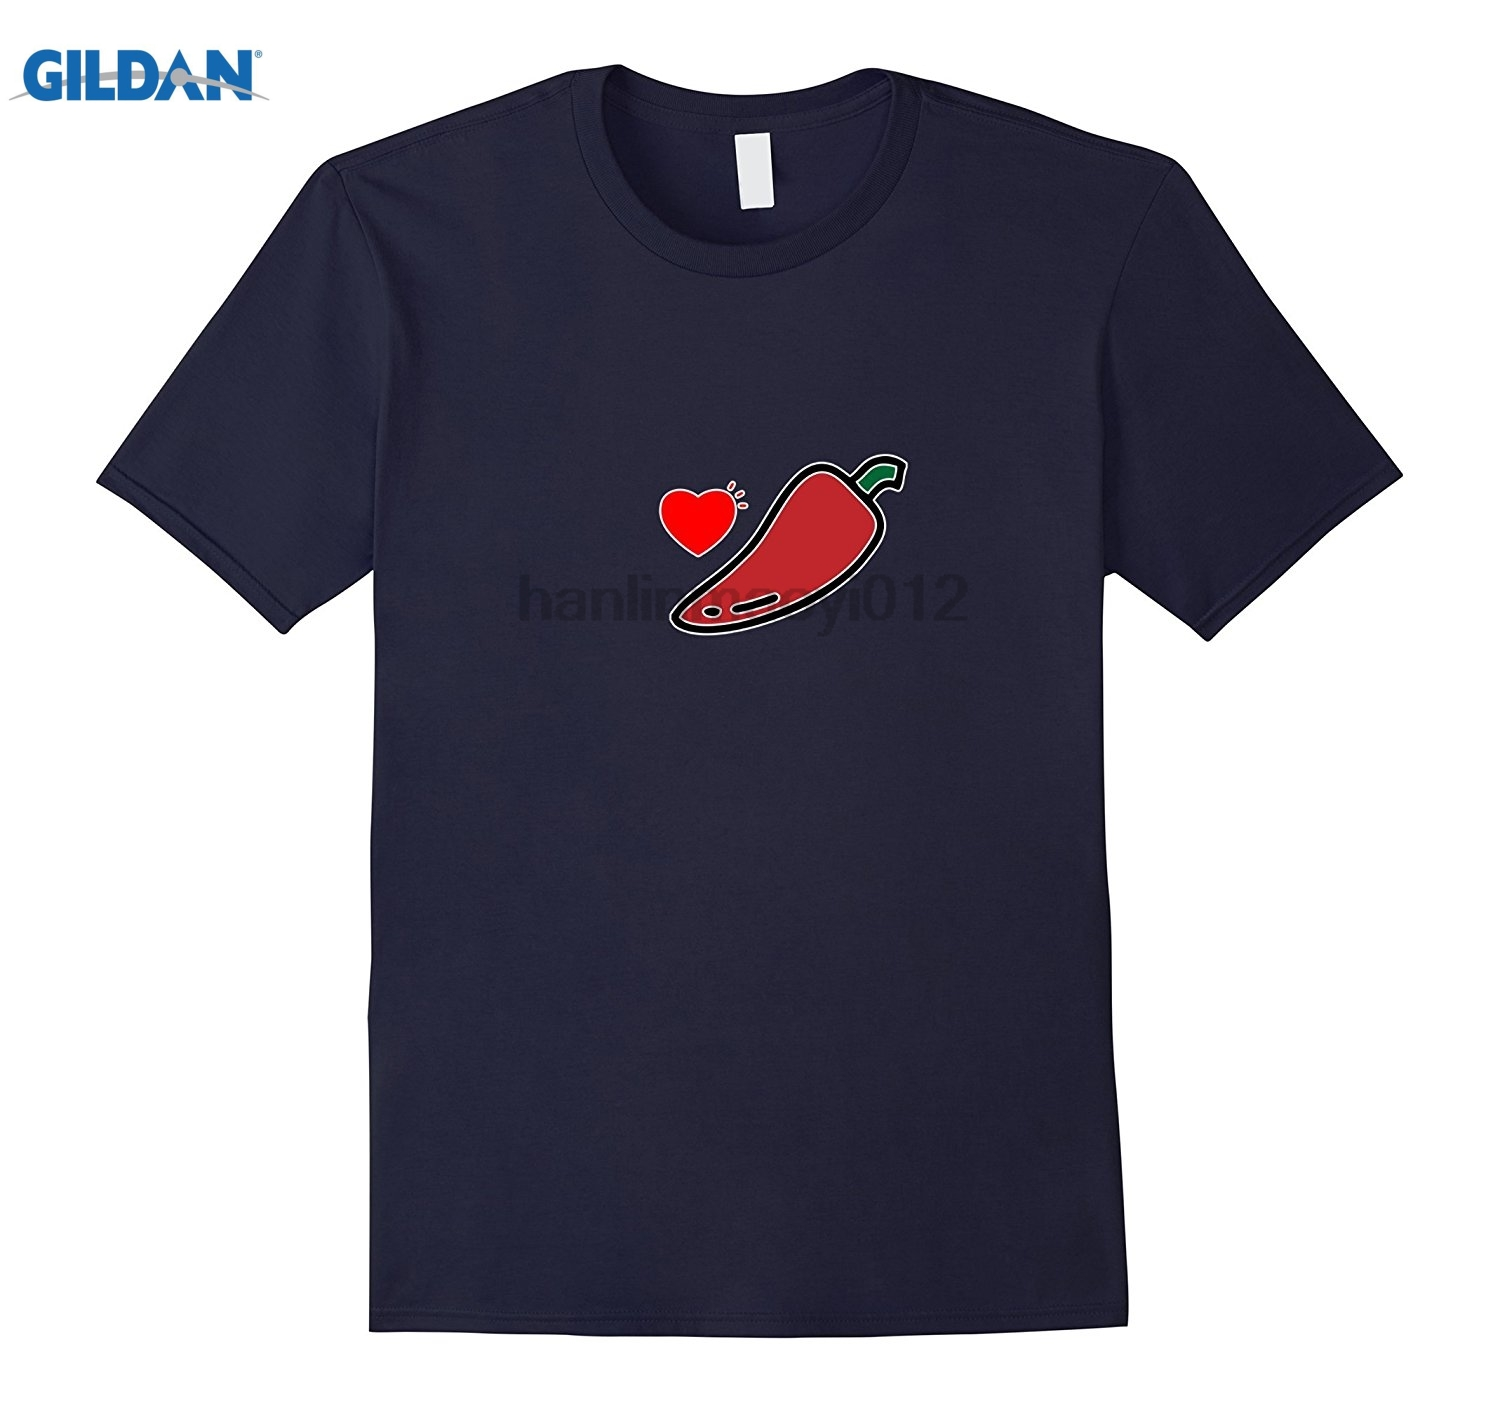 GILDAN Funny I Love Mexican Chile T-shirt for Spicy Lovers Womens T-shirt ...